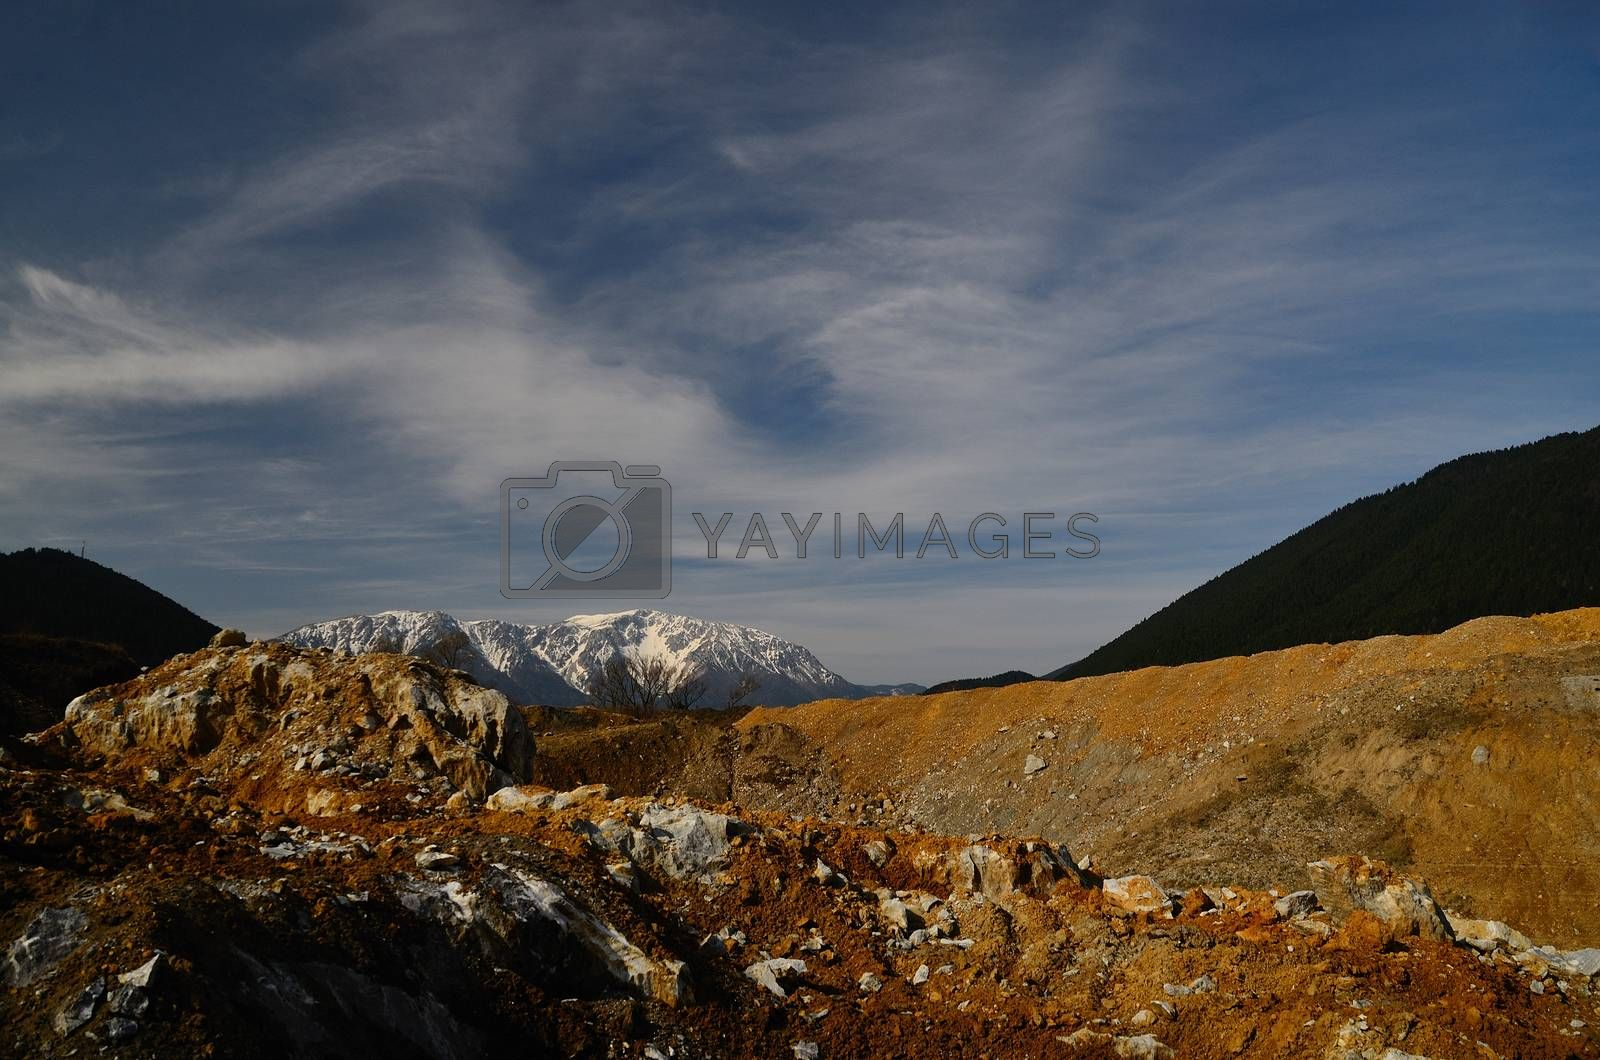 quarry with beautiful sky and snowy mountain in the background